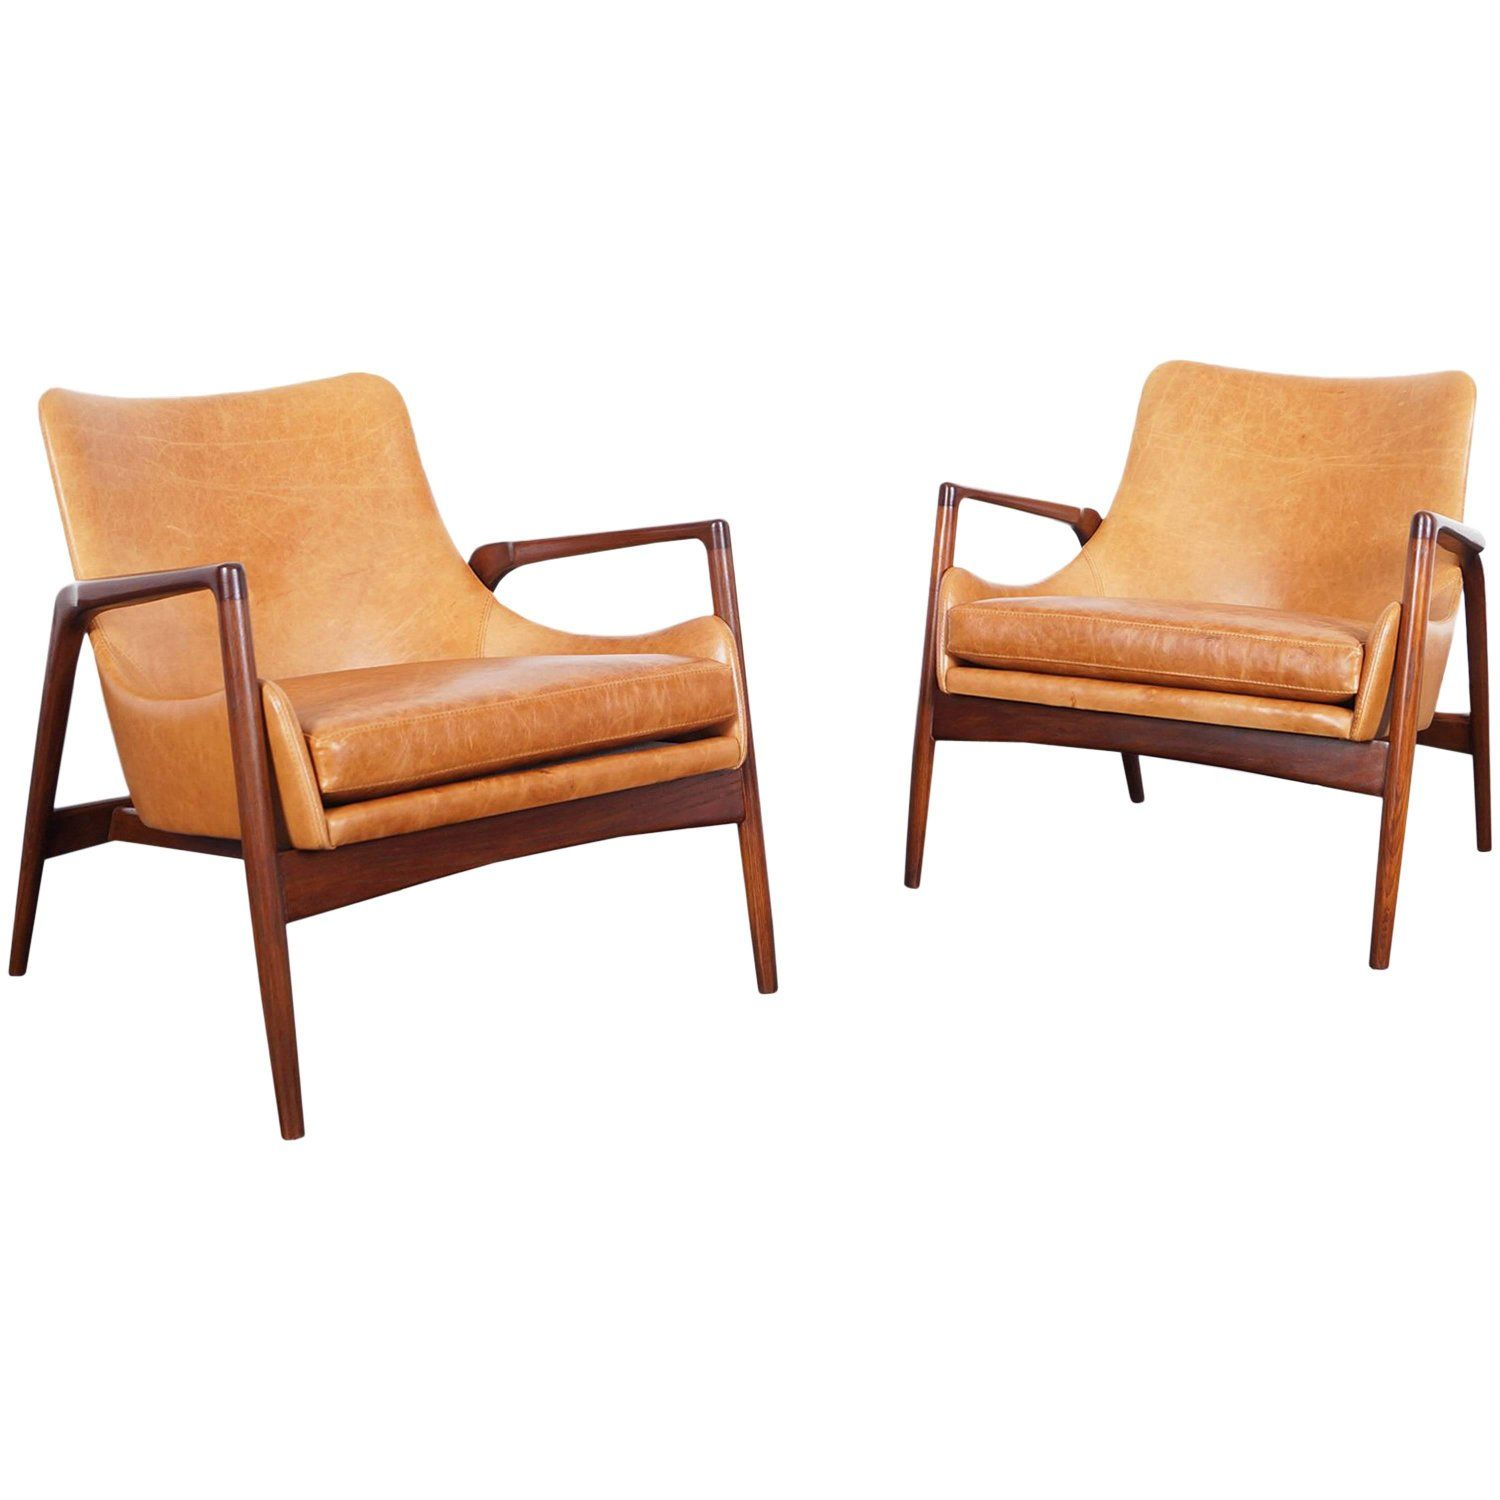 Danish Modern Leather Chair Danish Modern Leather Lounge Chairs By Ib Kofod Larsen